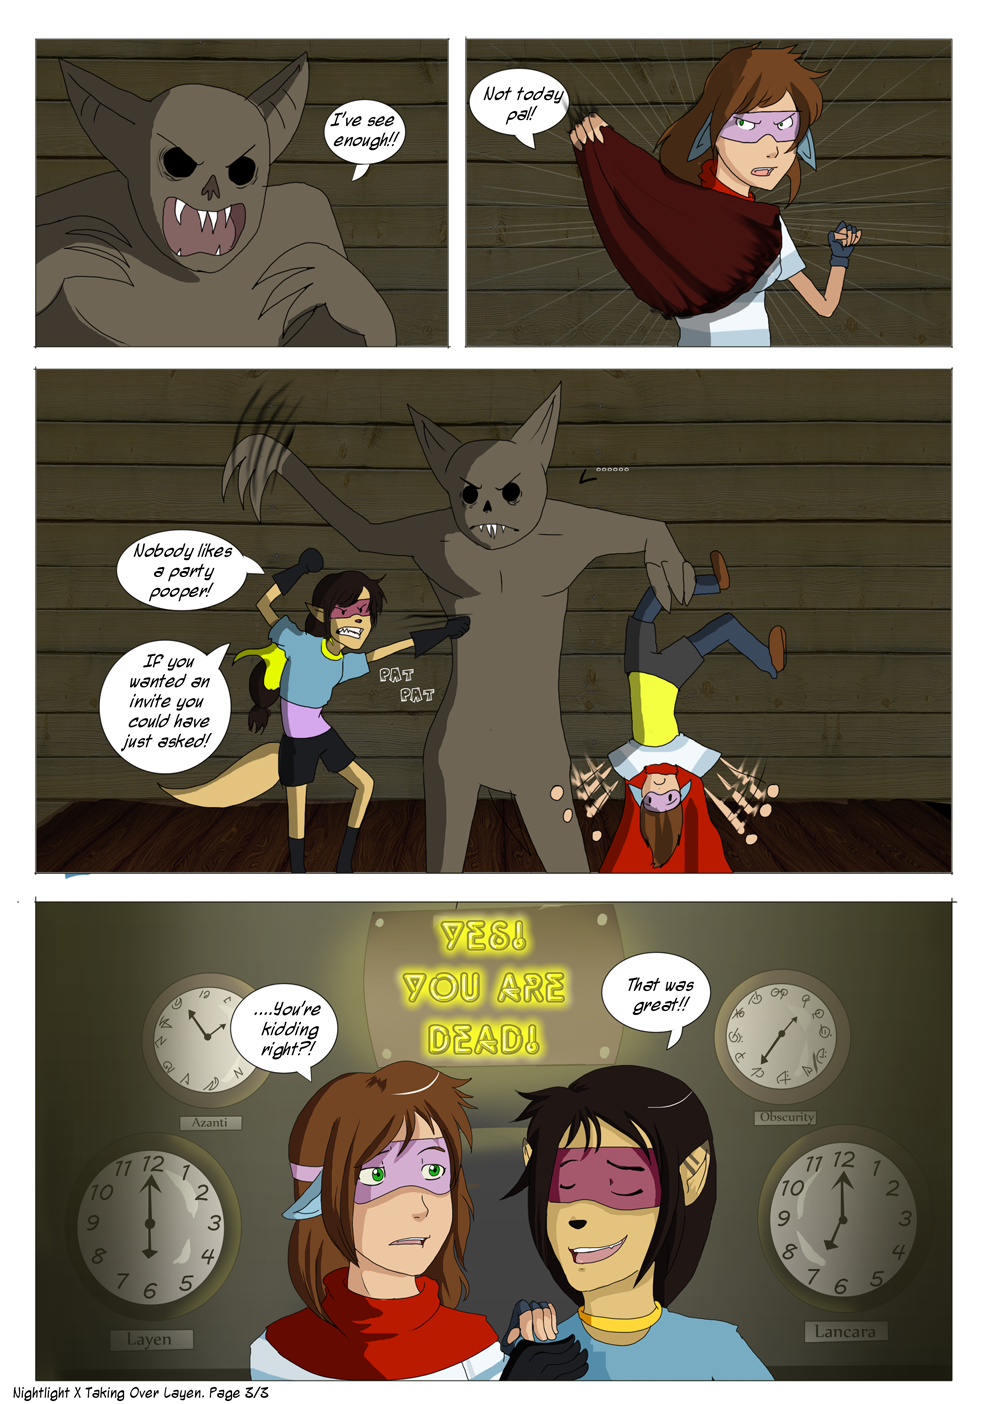 Nightlight Pg 3, by Natomi